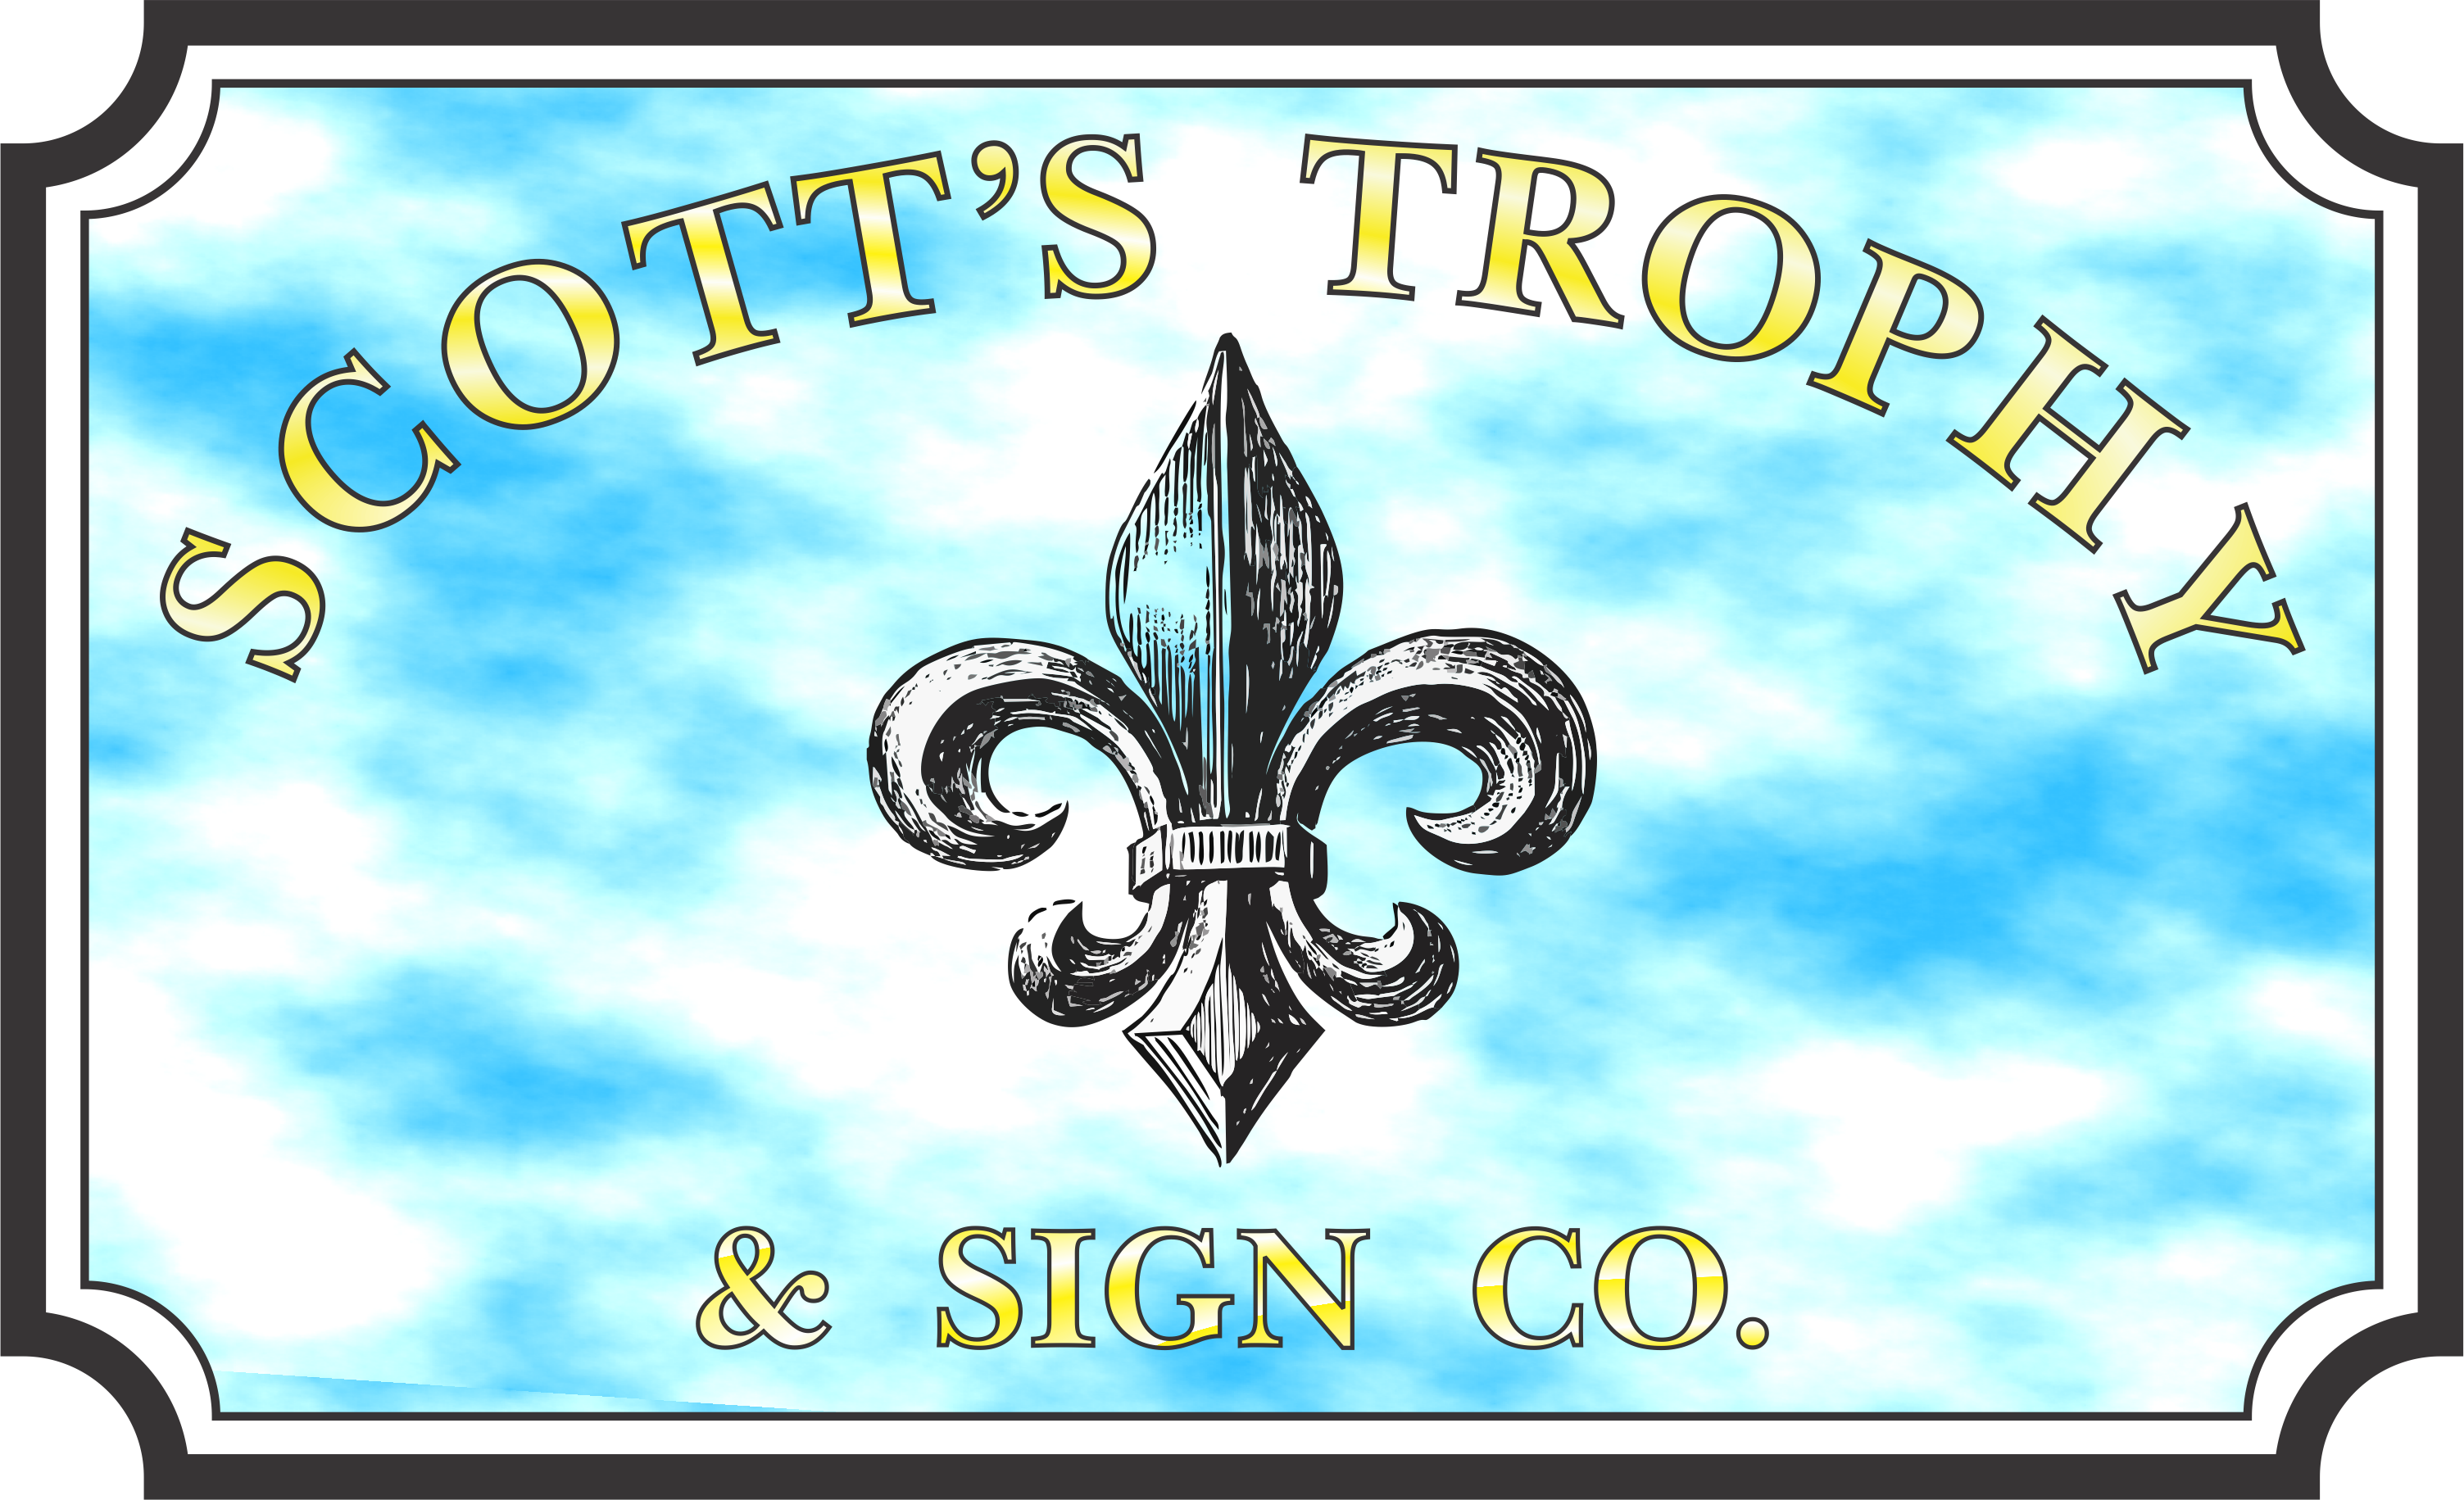 Scott's Trophy & Sign Co